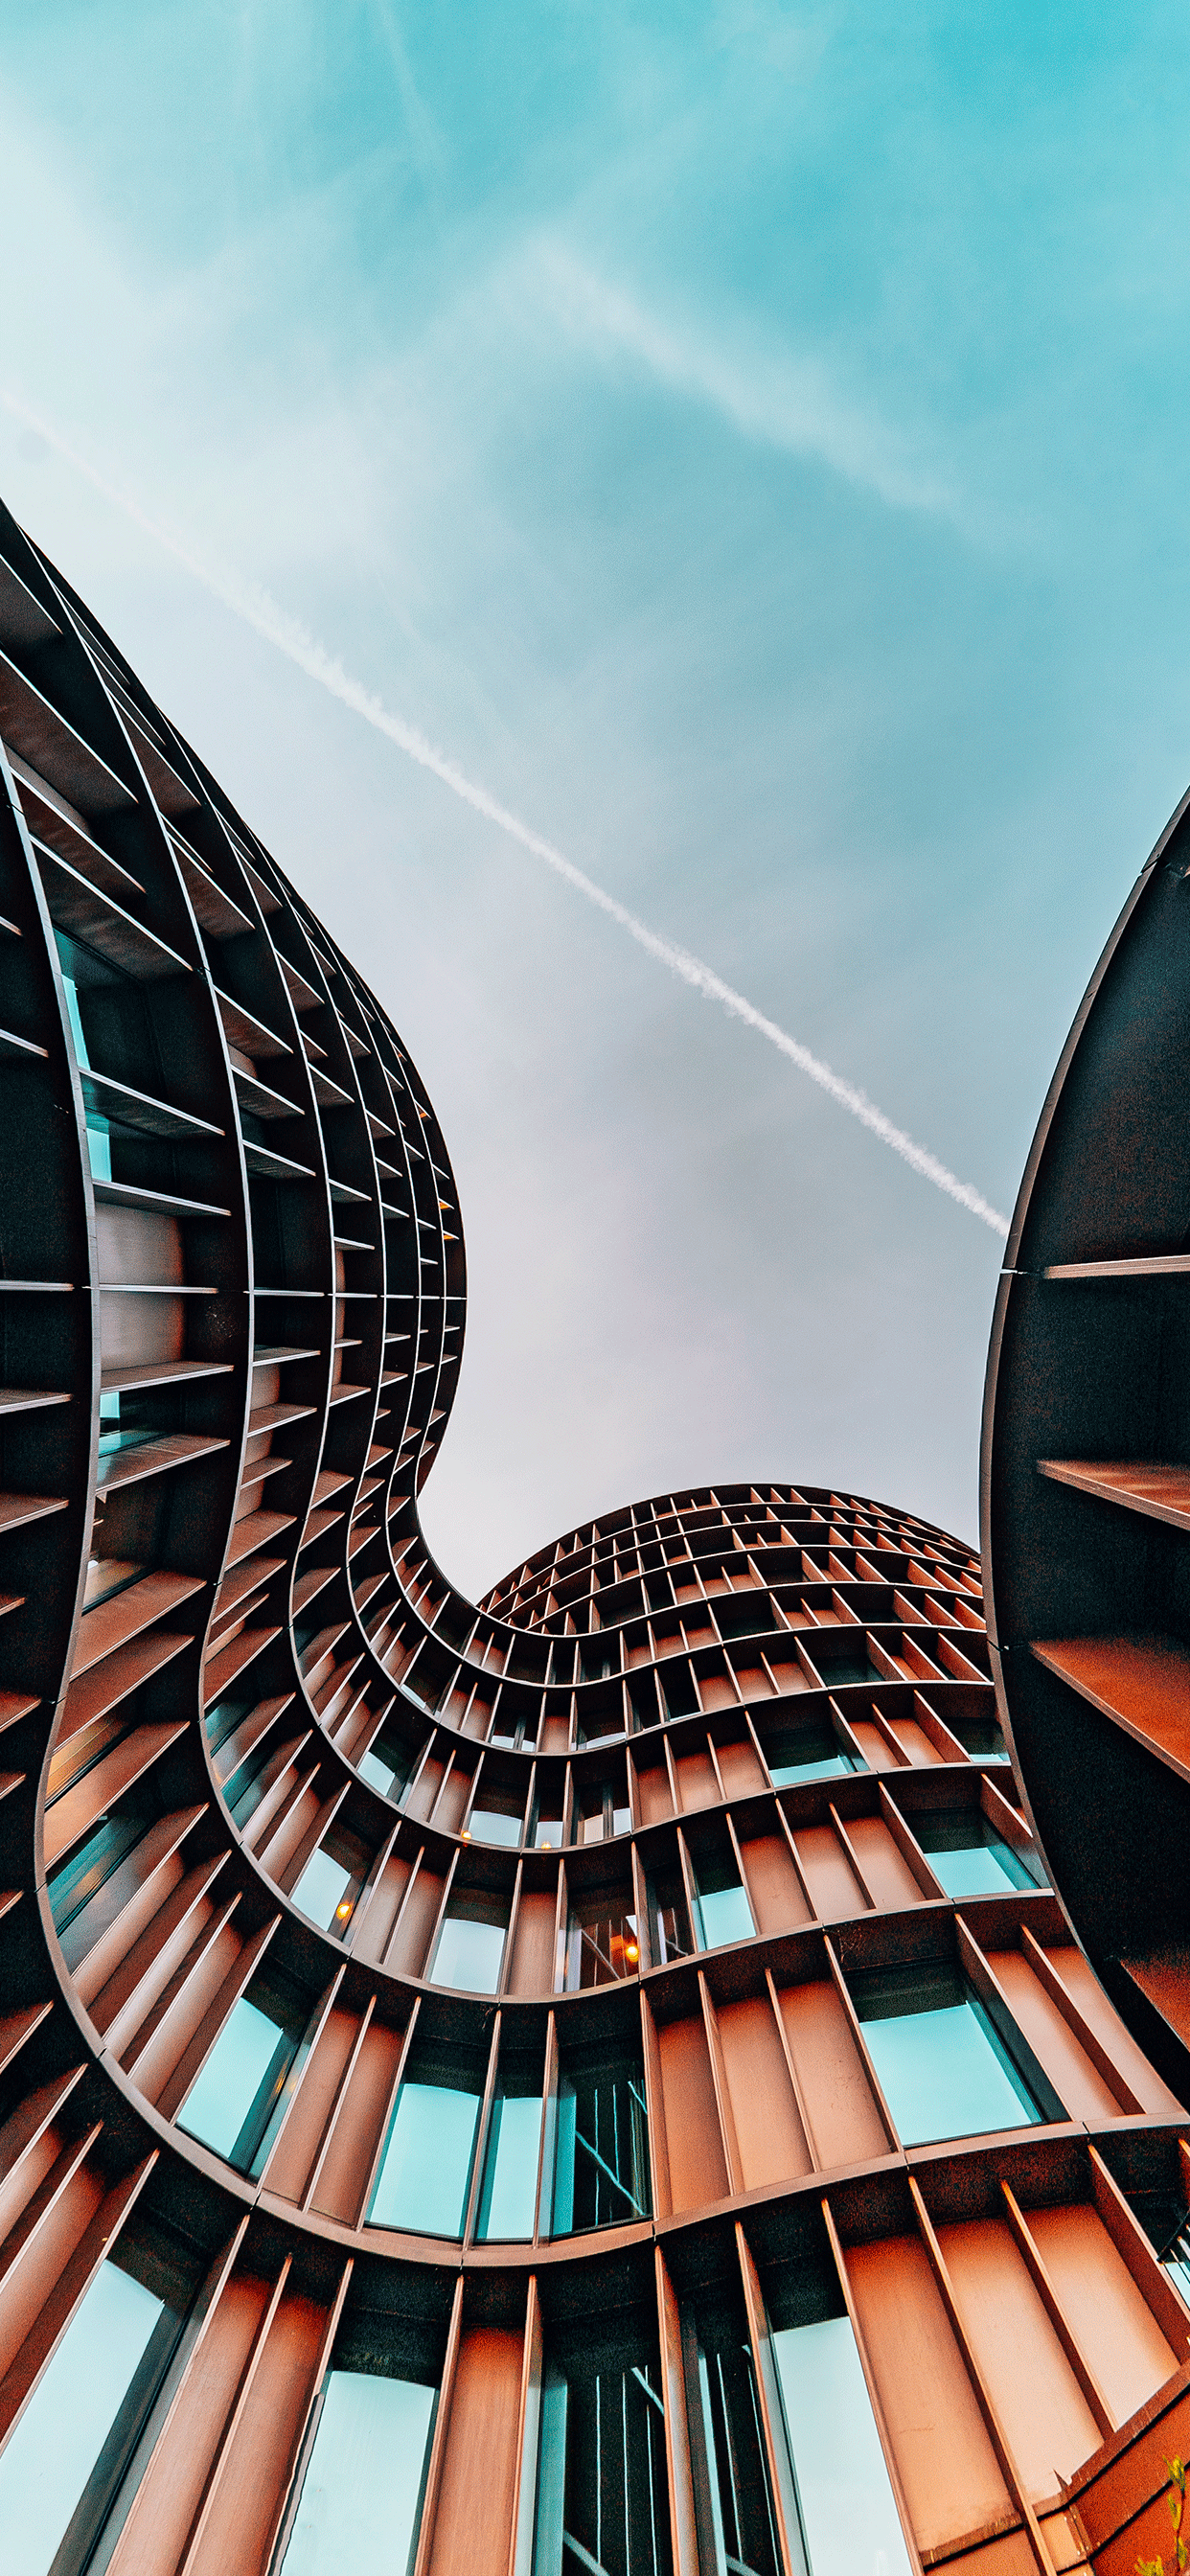 iPhone Architecture Wallpapers   Top Free iPhone Architecture ...